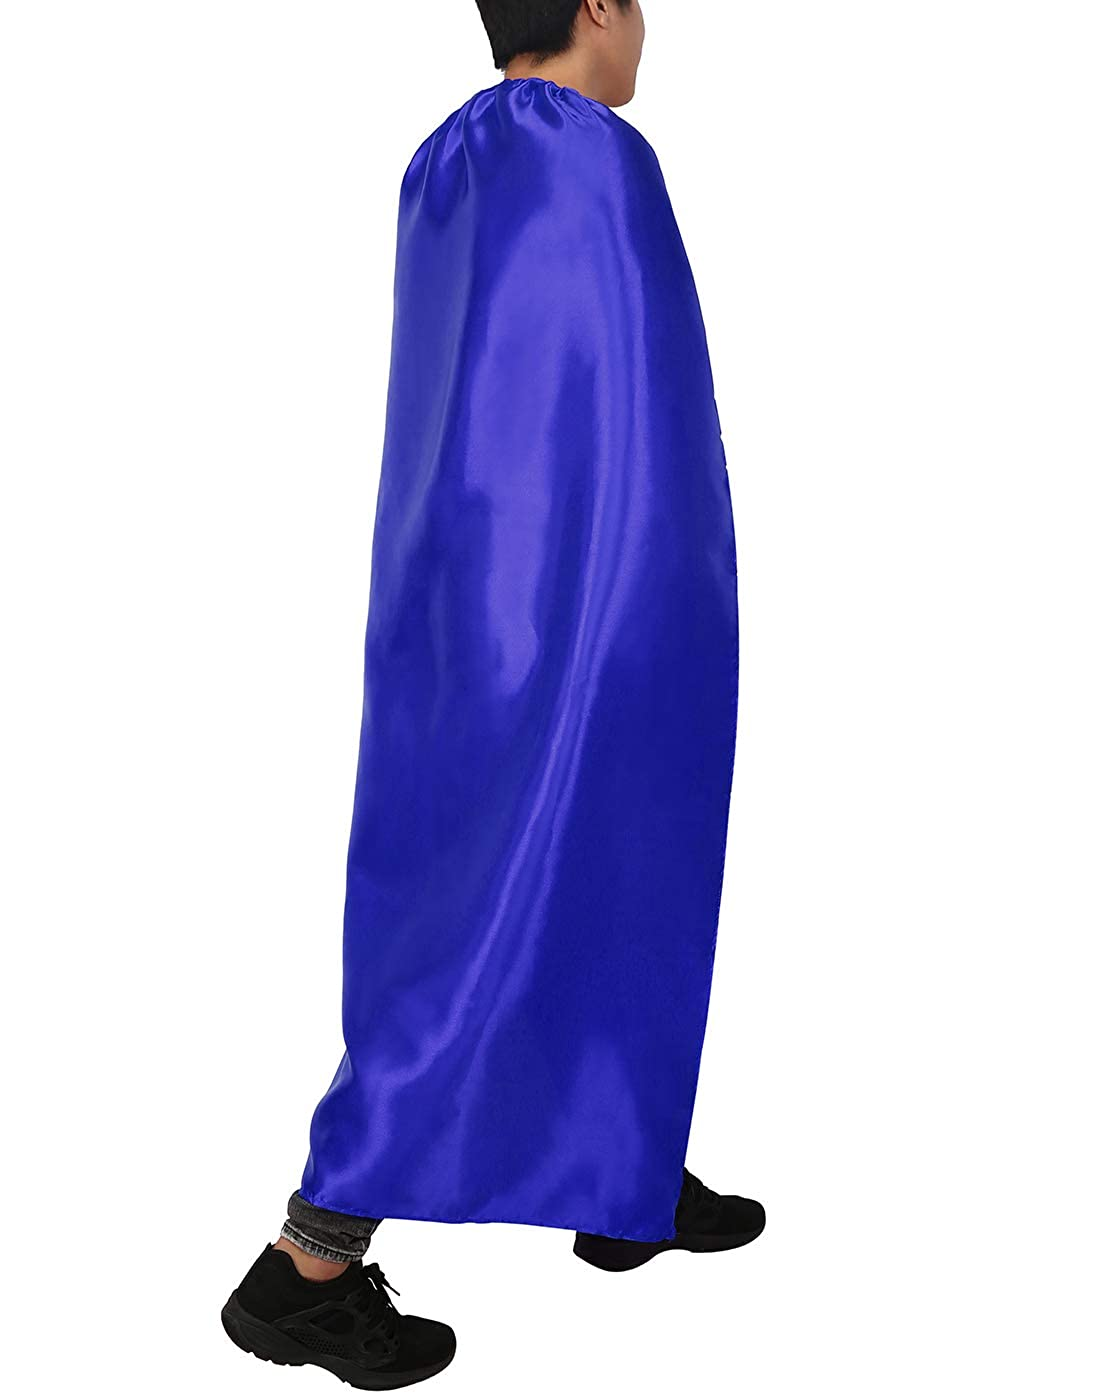 55 Inches Long HDE Adult Superhero Cape Halloween Costume Cosplay Accessory